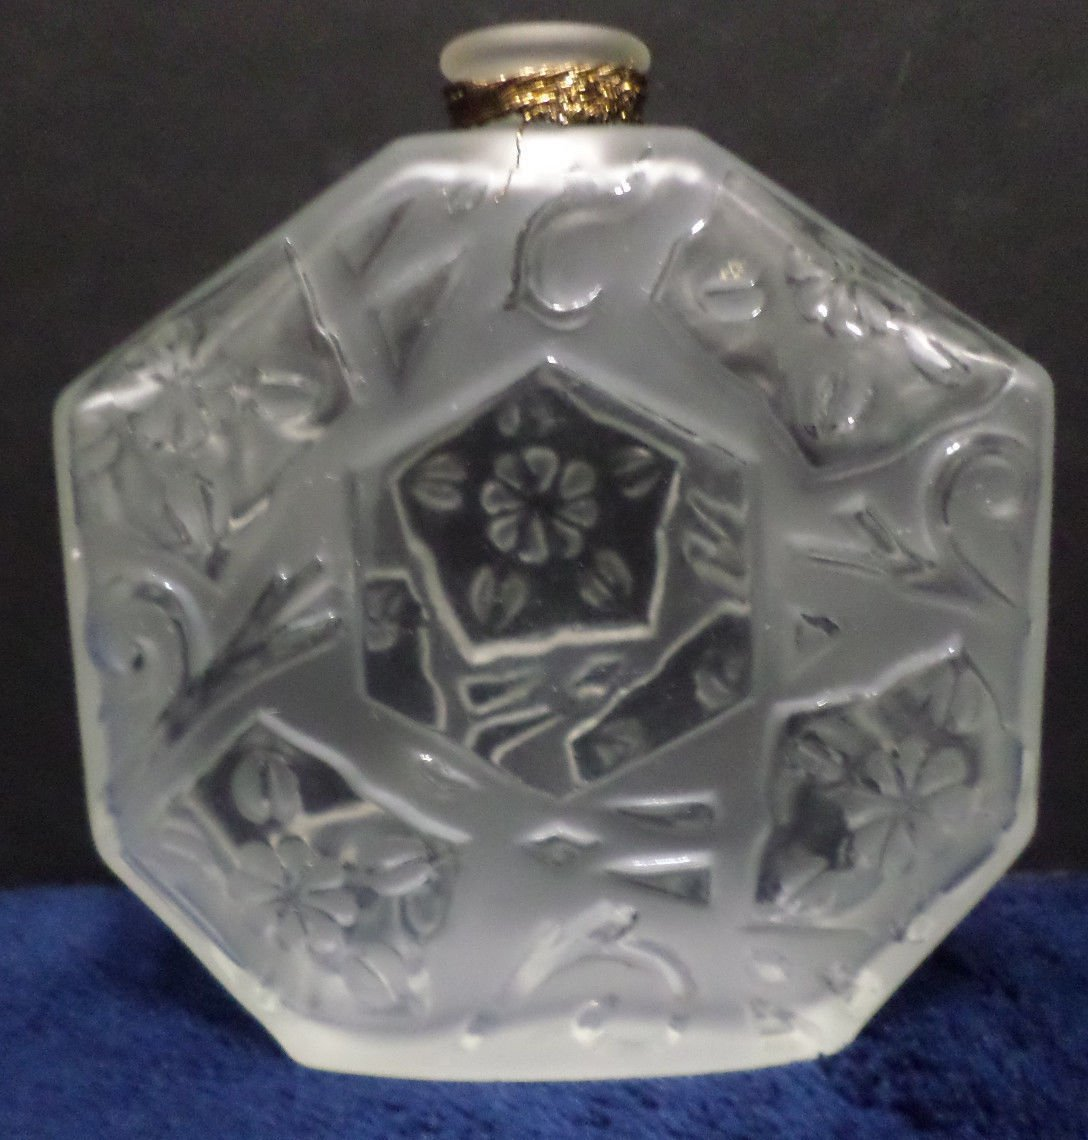 Perfume Bottle Ombre Rose by J.C. Brosseau Clear Frosted Glass made in France